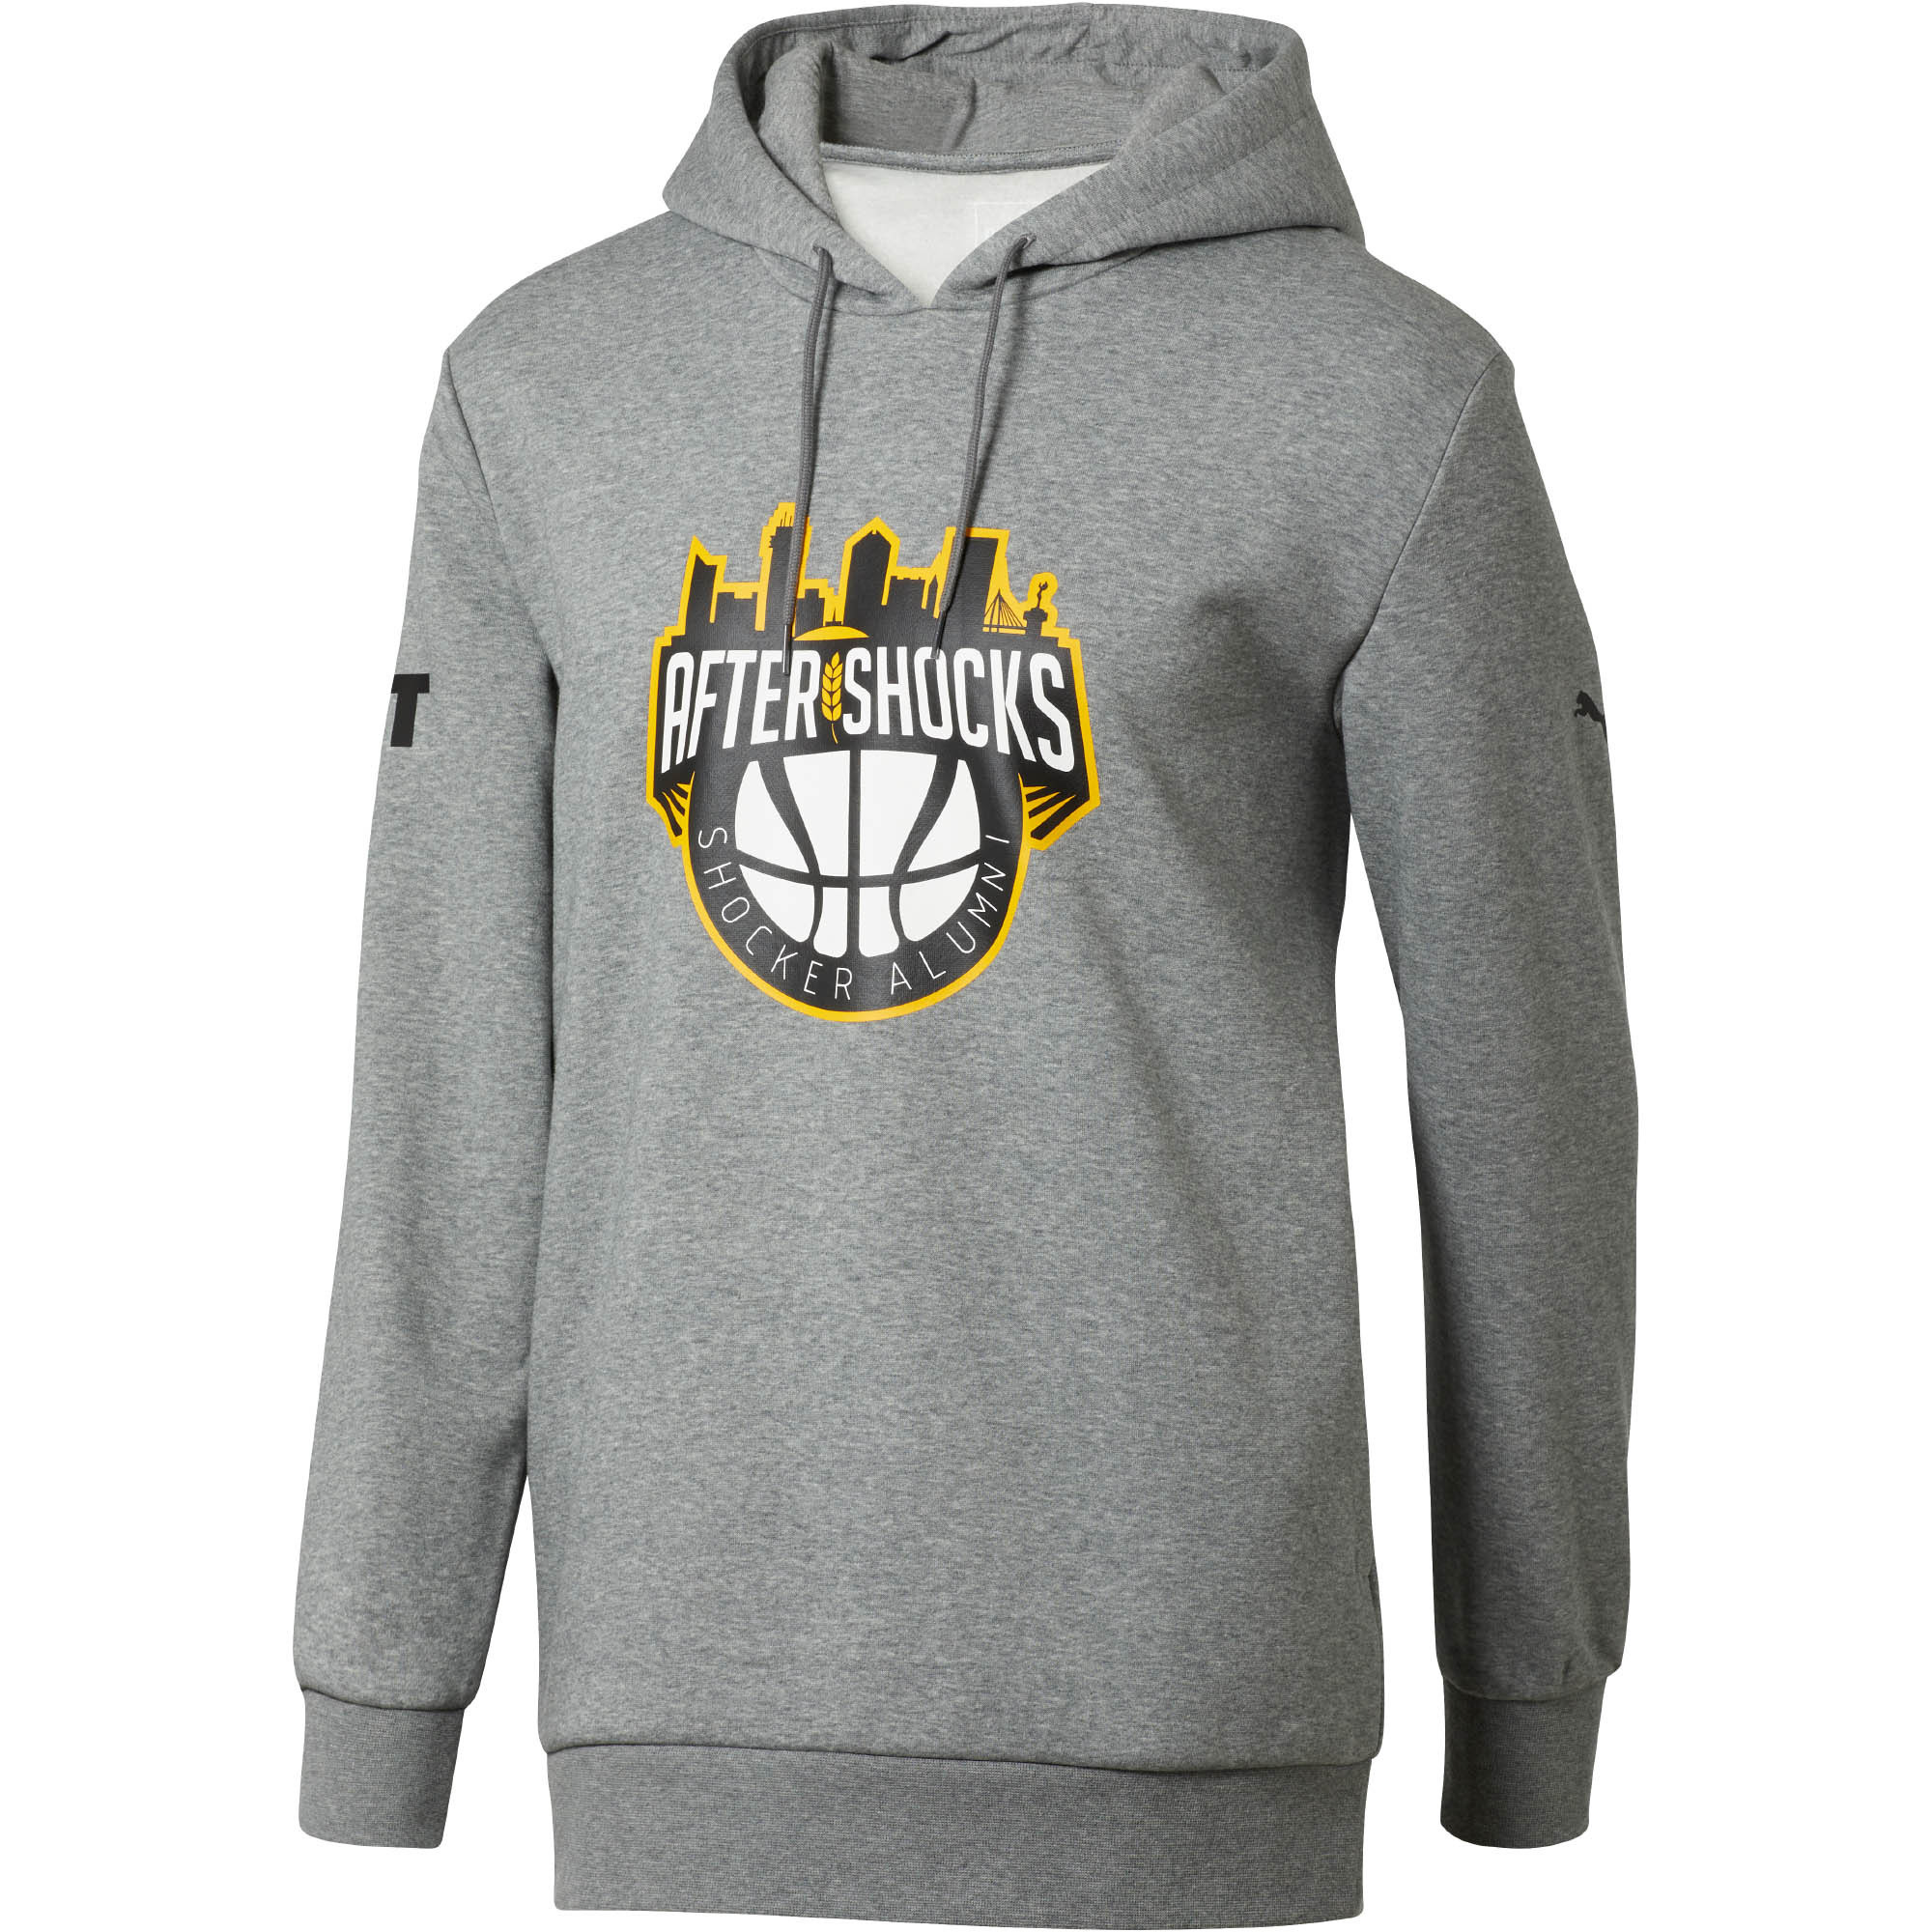 Cover Image For AFTERSHOCKS HOODIE